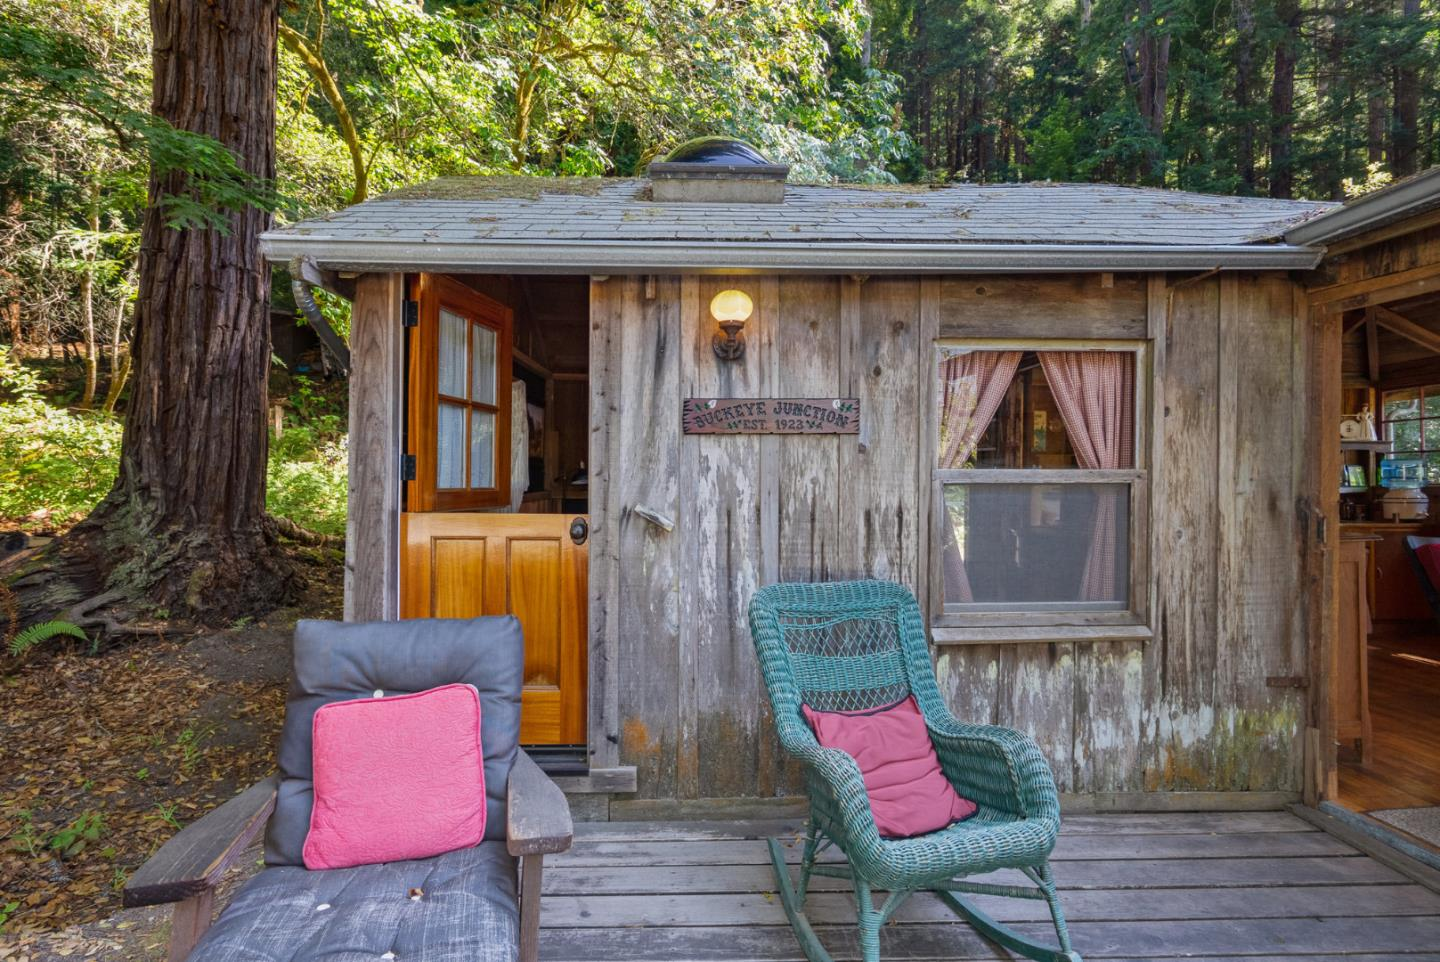 This is a sweet cabin built circa 1923. Sellers are ready to let another family enjoy this magical setting. The cabin has about 480 square feet, 1 bed, 1 bath and boasts 0.47 acres. Behind the cabin is the 600 acre Pesky Ranch with a POST conservation easement preventing any building or logging & providing sanctuary for lots of wildlife. Watch the sun dance across the neighbor's meadows. Tree species include shreve oaks, tan oak, coast live oak, willow, buckeye, hazelnut, firs and majestic redwoods, all inviting dozens of types of birds. The original builder lived here for years, using redwood board and batten siding & framing lumber harvested from the immediate area.  Rustic at the core, there are many conveniences. like the new bathroom with stackable washer and dryer, engineered flooring and insulation!  This is a perfect getaway, with coastal and state park access within minutes. They love the place so much, the sellers would like right of first refusal if YOU ever choose to sell!.